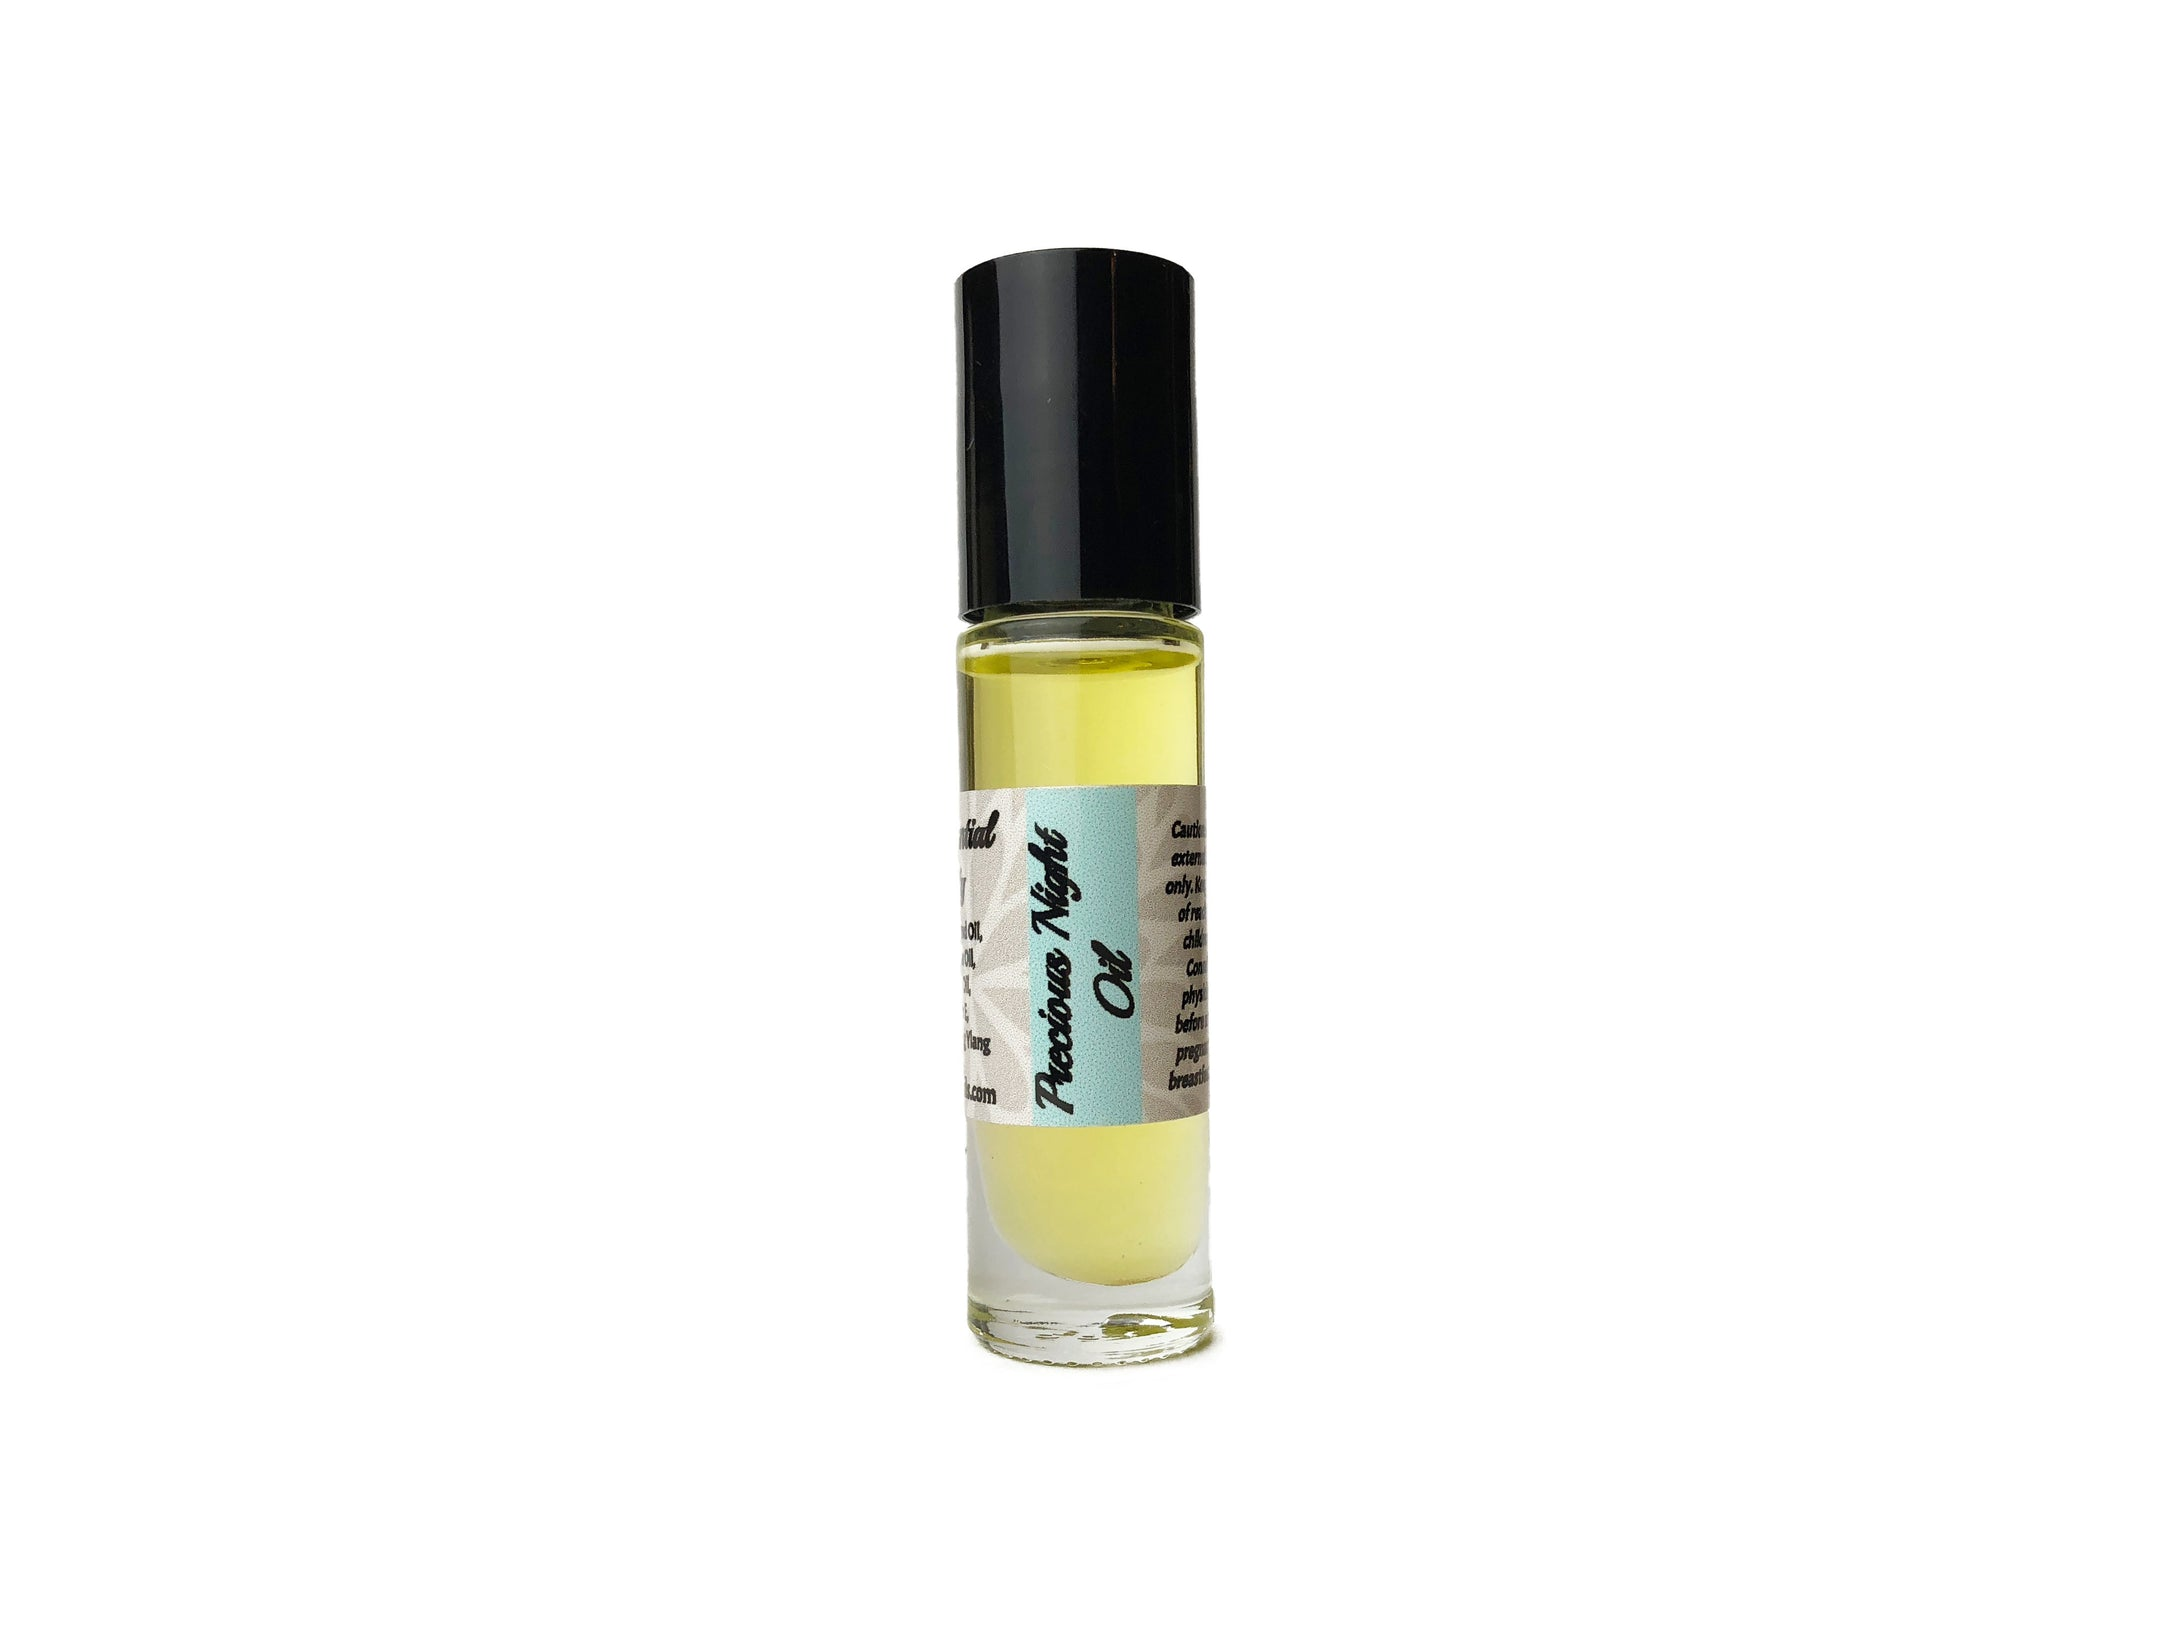 Precious Night Oil